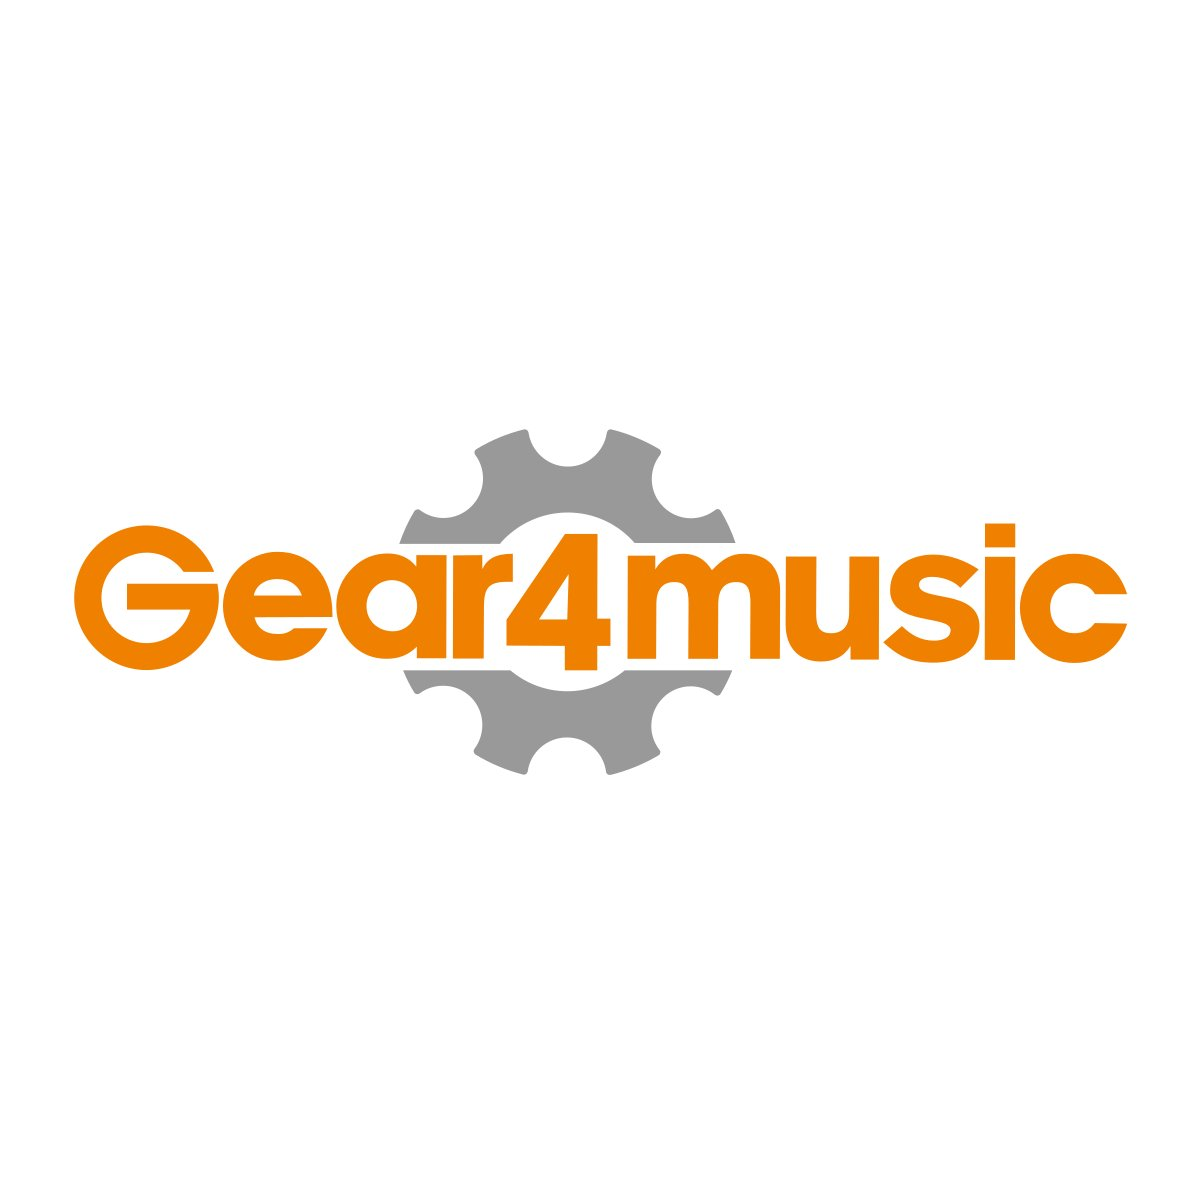 Student Klarinet van Gear4music